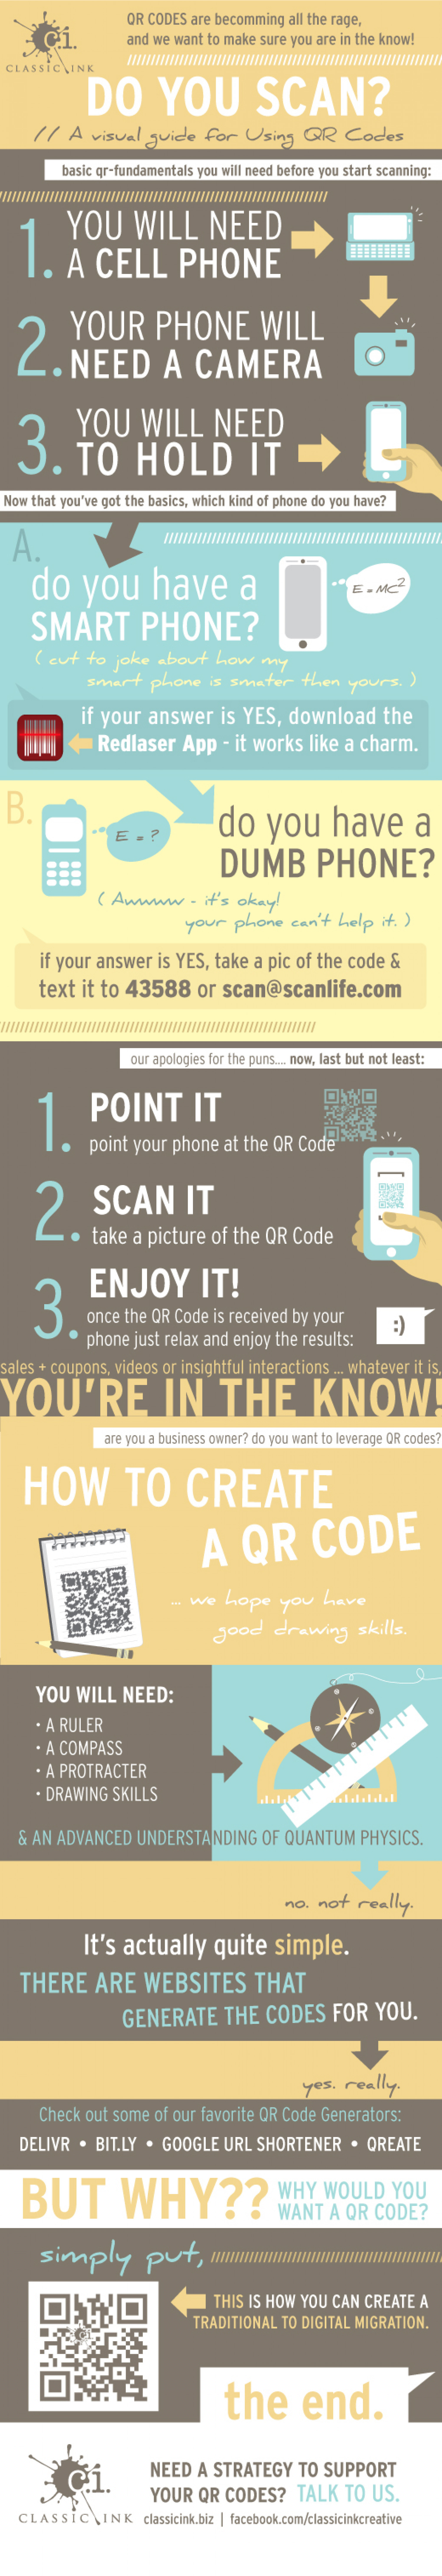 How to use QR codes! Infographic